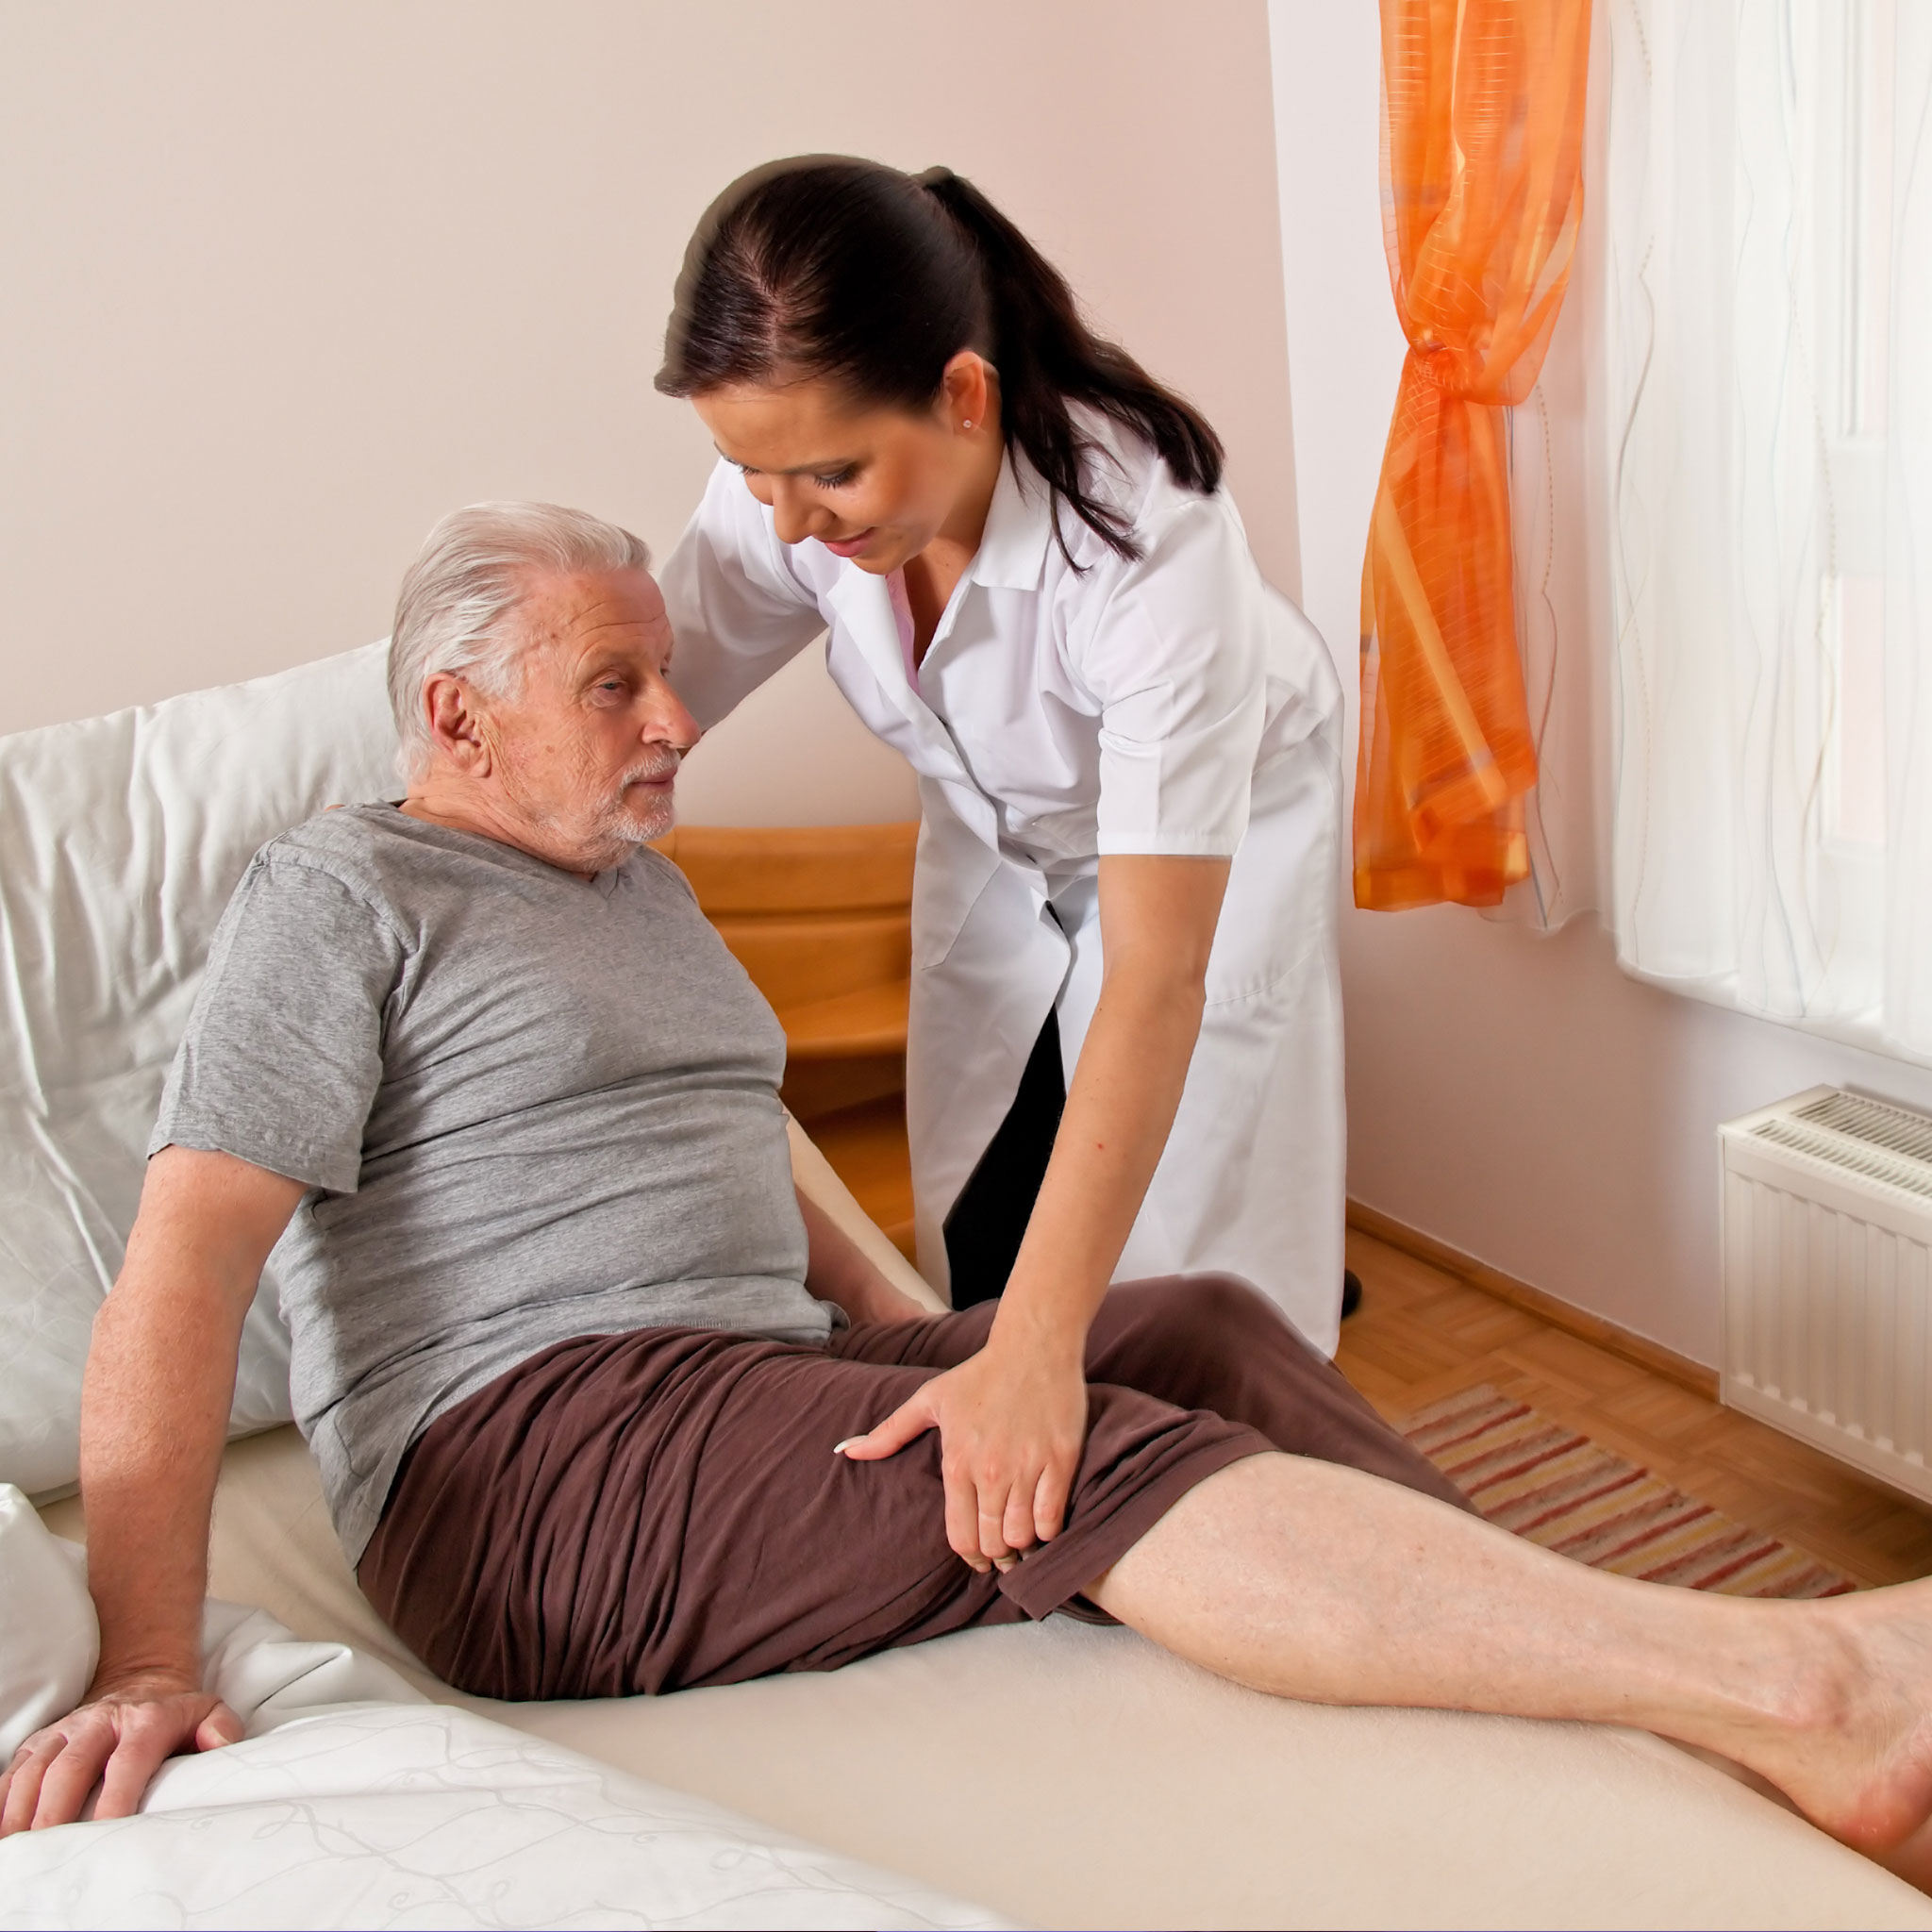 Signs you may have hired a lousy caregiver for your loved one